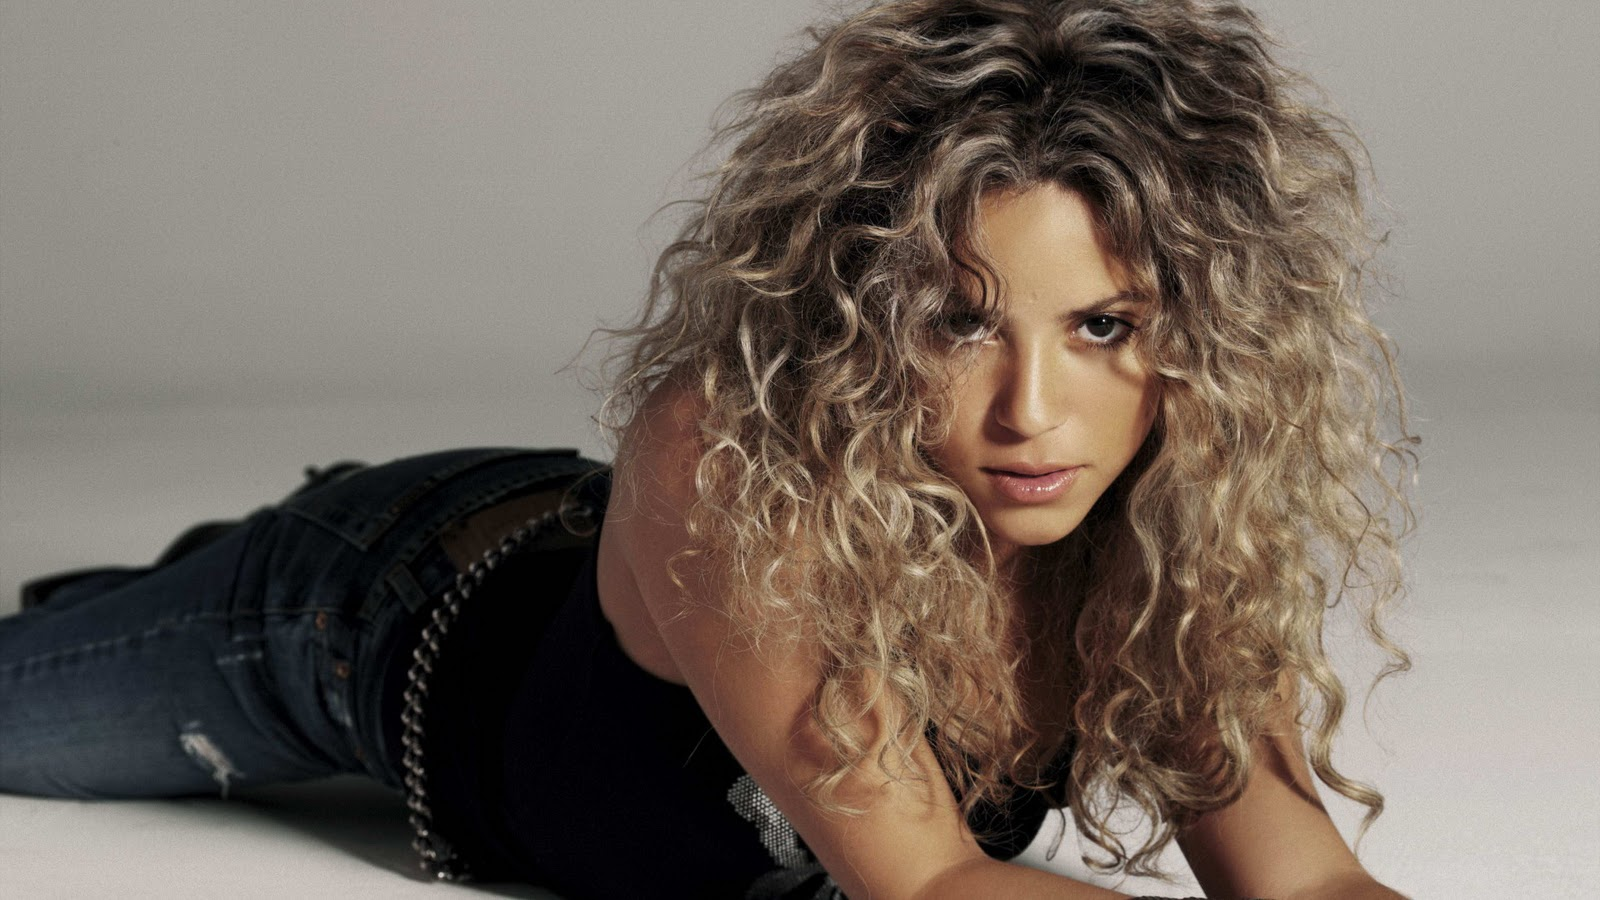 Shakira Pictures Bio Wiki Clothing Wallpapers Movies Latest News